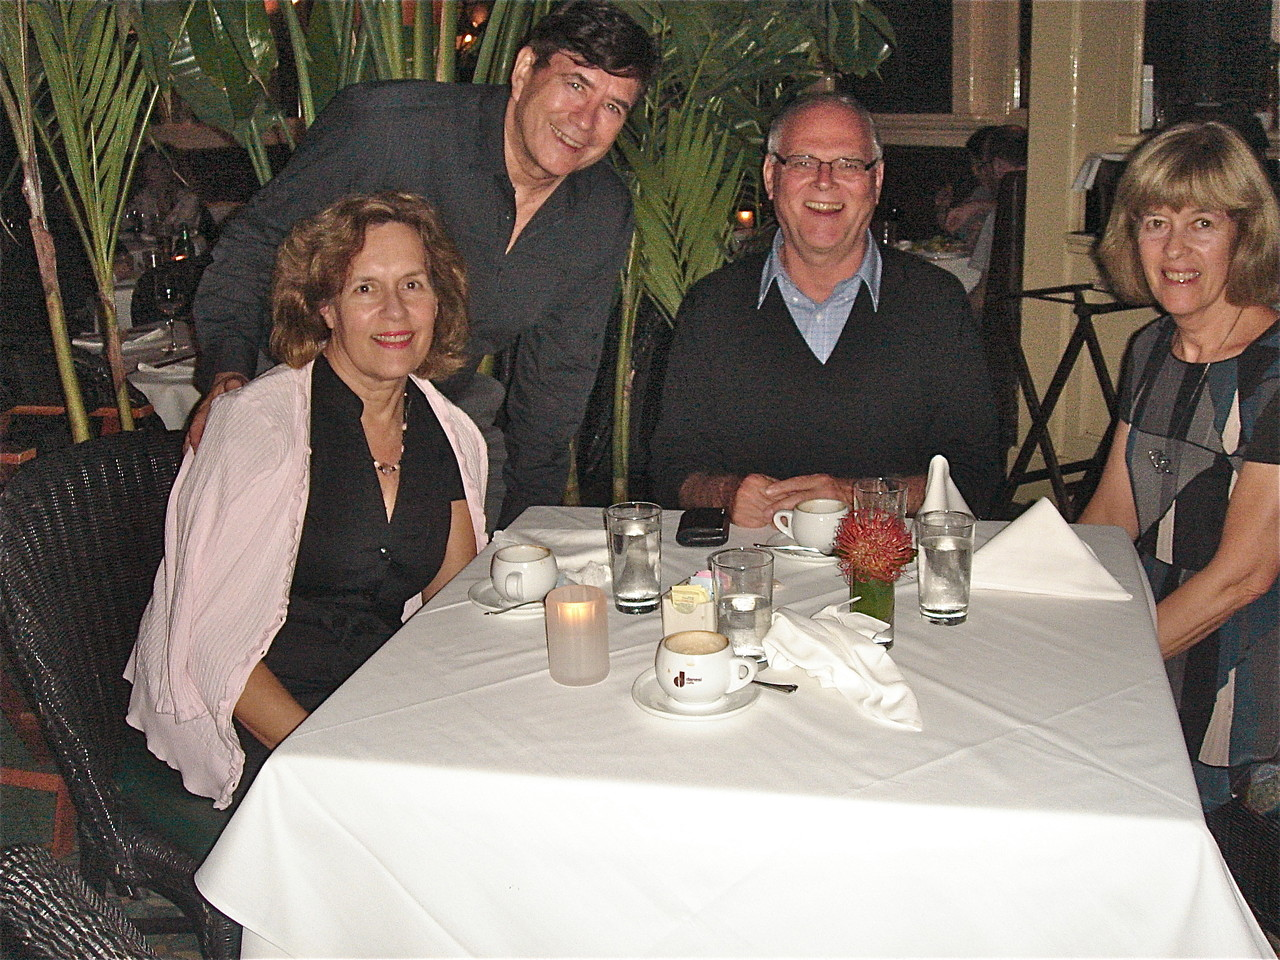 Lorraine, John, Bernd & Nancy at Le Colonial Vietnamese Restaurant., NYC